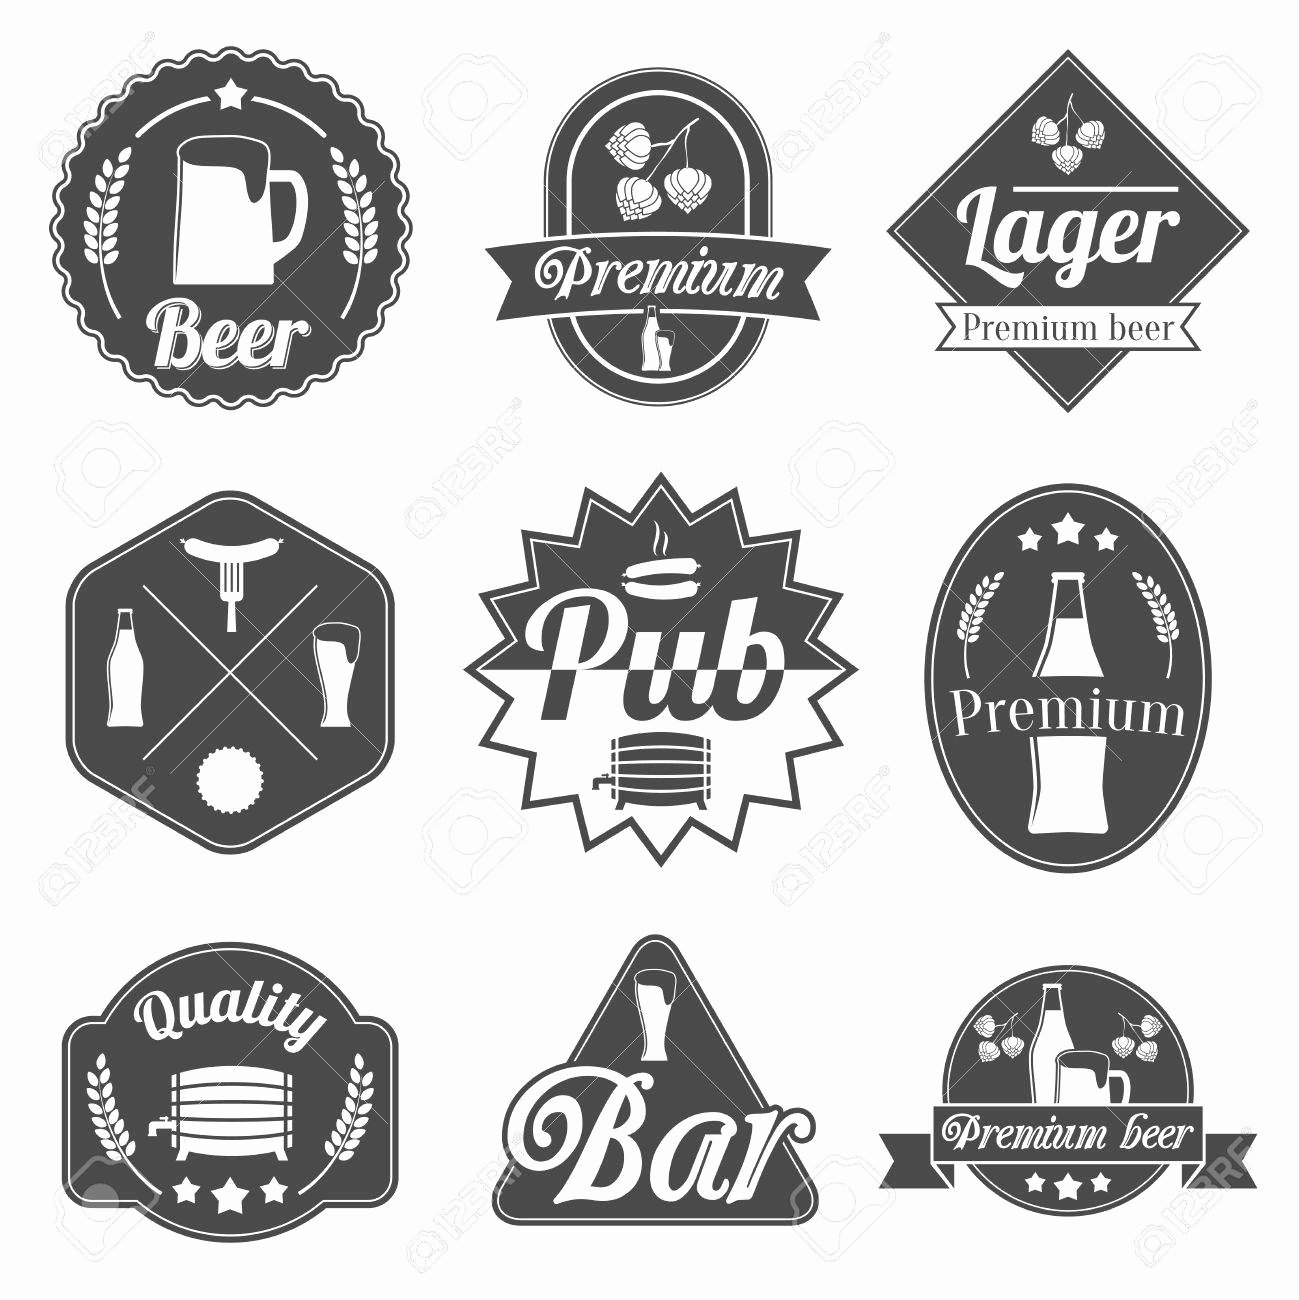 Liquor Bottle Labels Template Unique Liquor Label Template